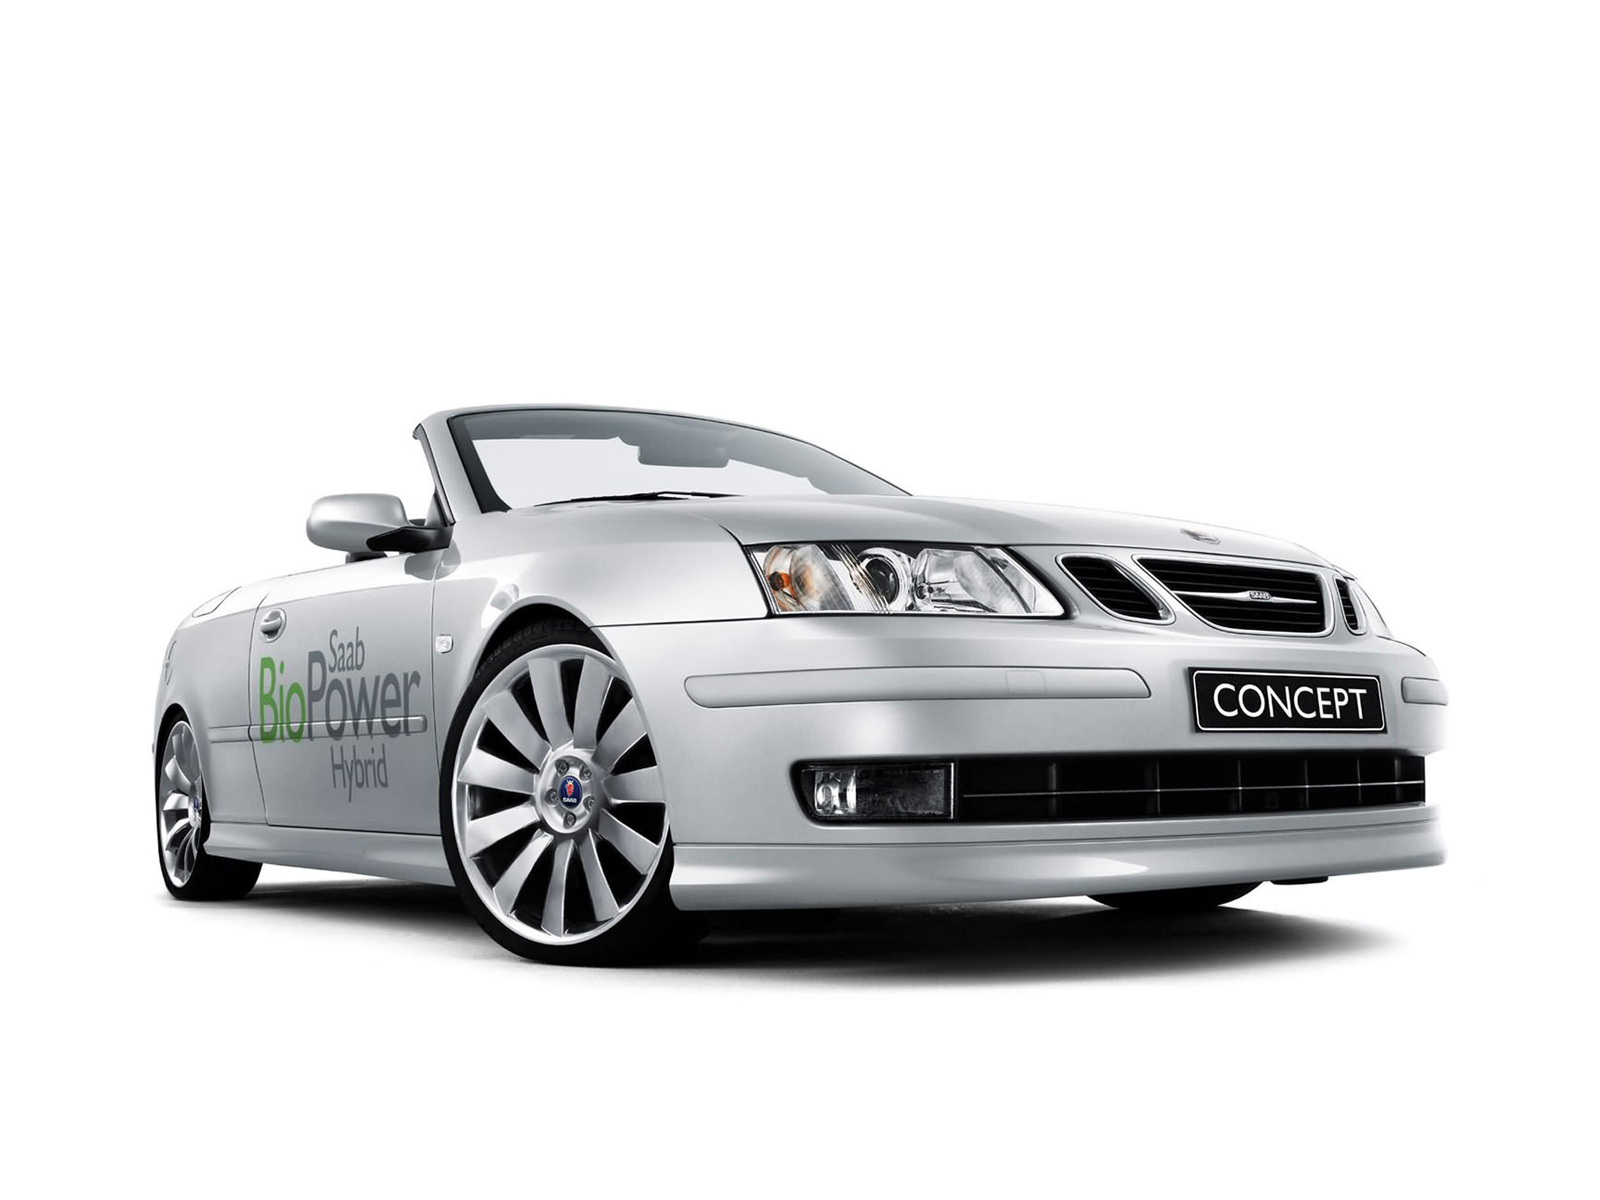 saab 9 3 cabrio photos news reviews specs car listings. Black Bedroom Furniture Sets. Home Design Ideas